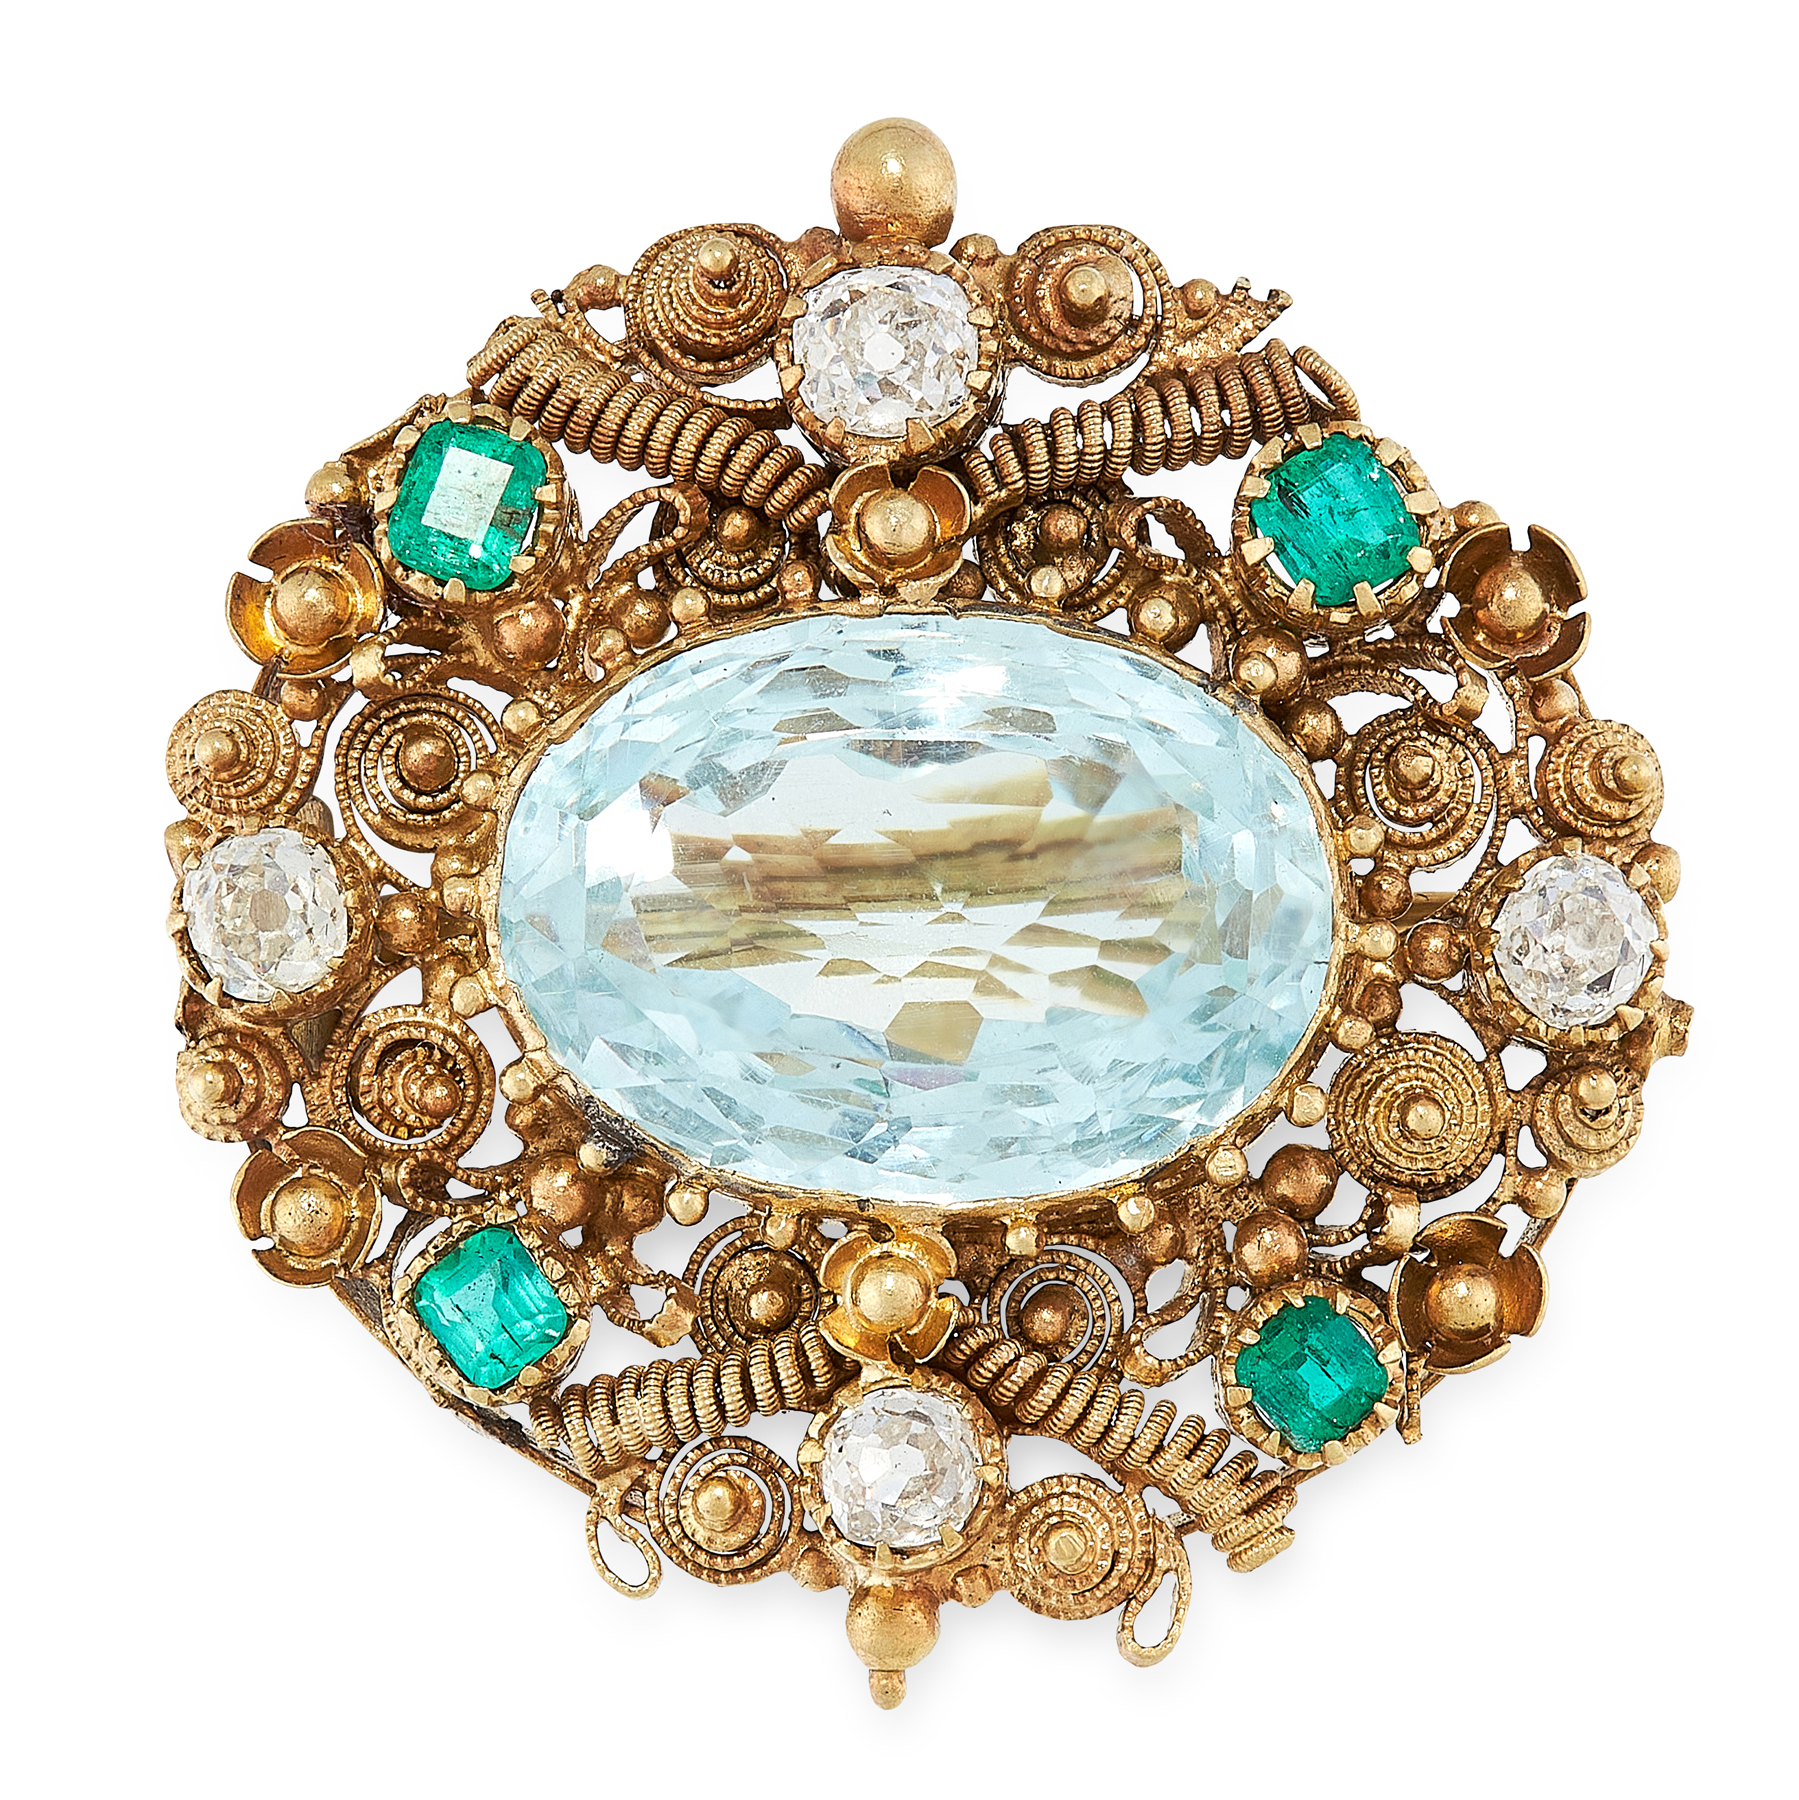 AN ANTIQUE AQUAMARINE, EMERALD AND DIAMOND BROOCH, 19TH CENTURY in yellow gold, set with an oval cut